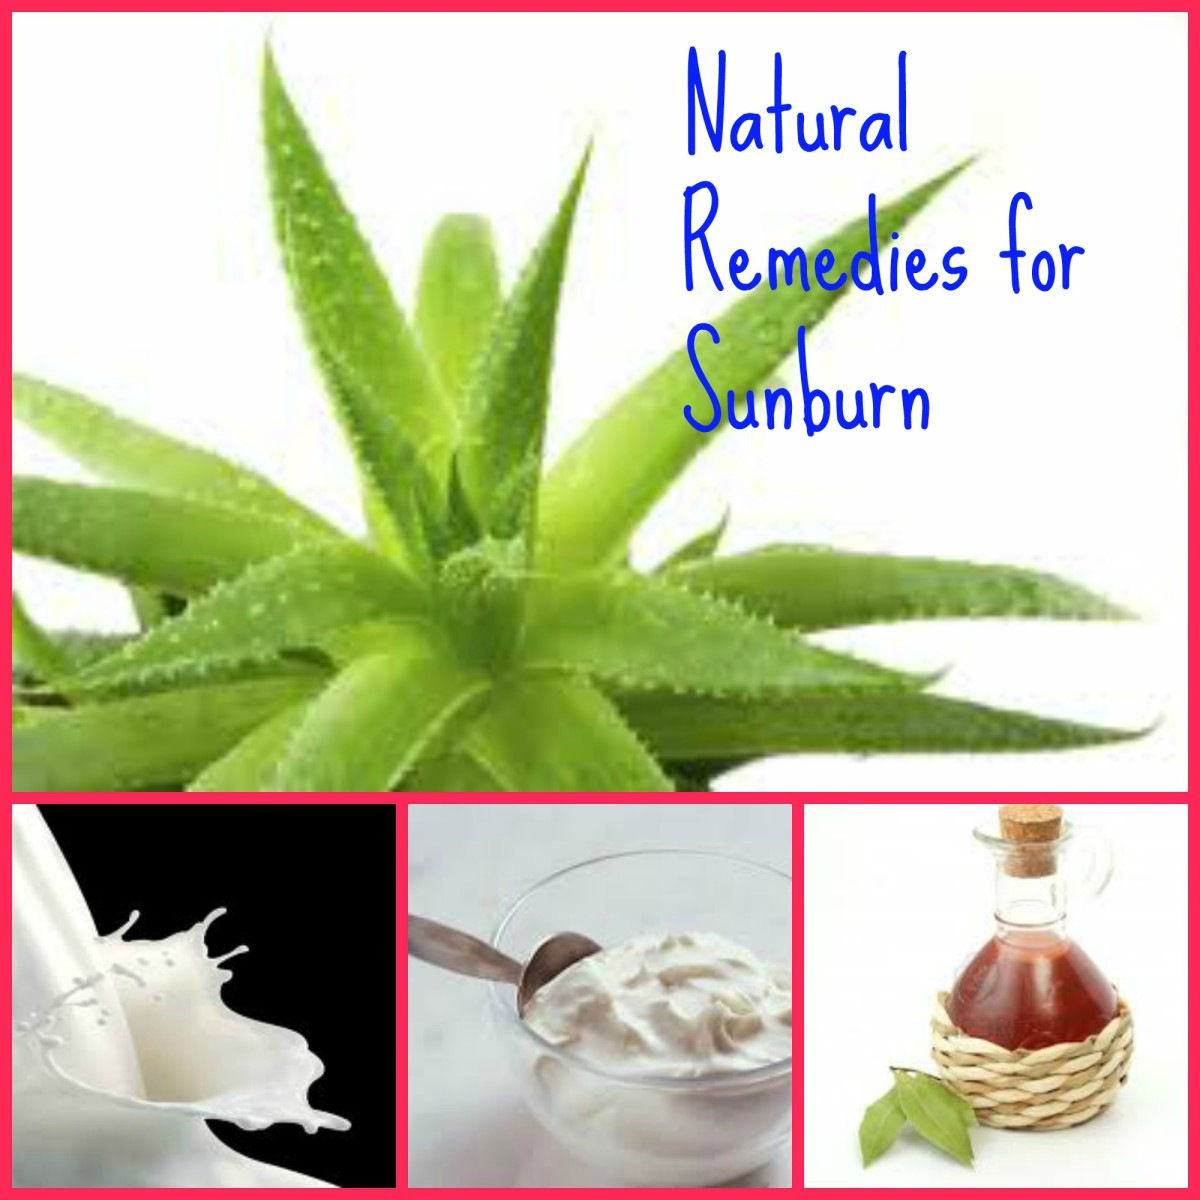 Natural Home Remedies for Sunburn